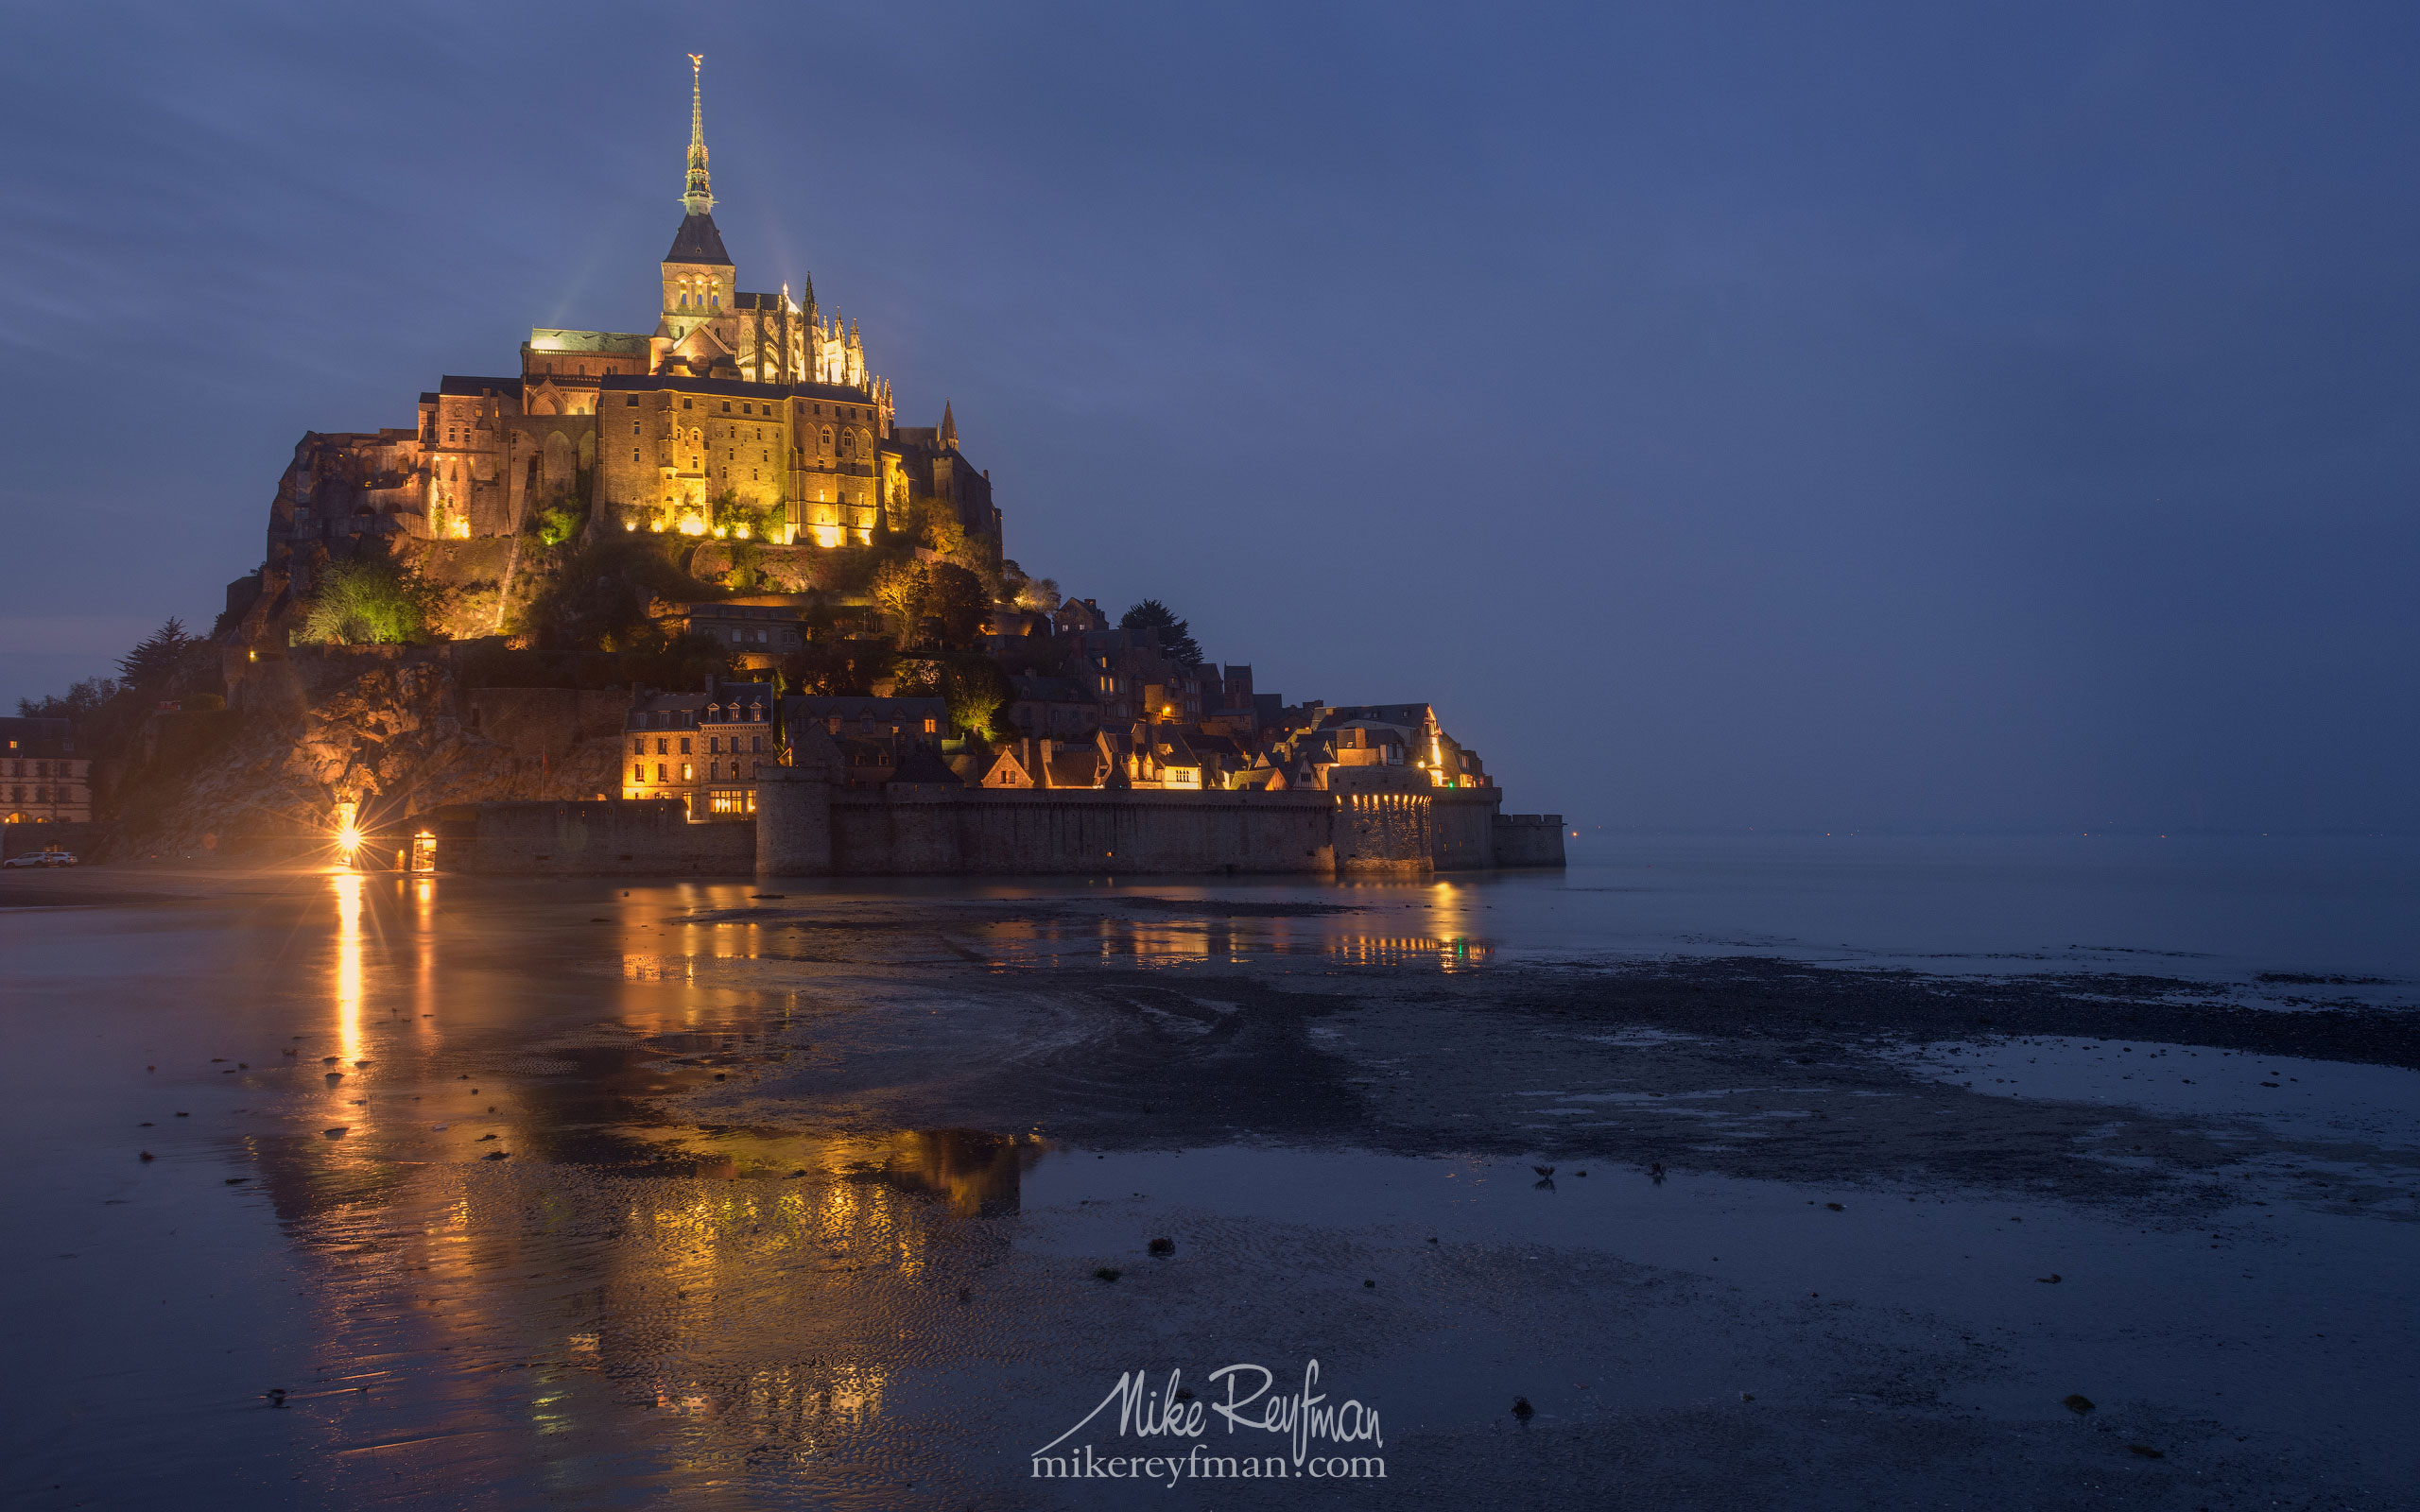 Le Mont-Saint-Michel Island and Benedictine Abbey. Normandy, France SM_MR50A1083 - Le Mont Saint Michel Island and Benedictine Abbey, Normandy, France - Mike Reyfman Photography